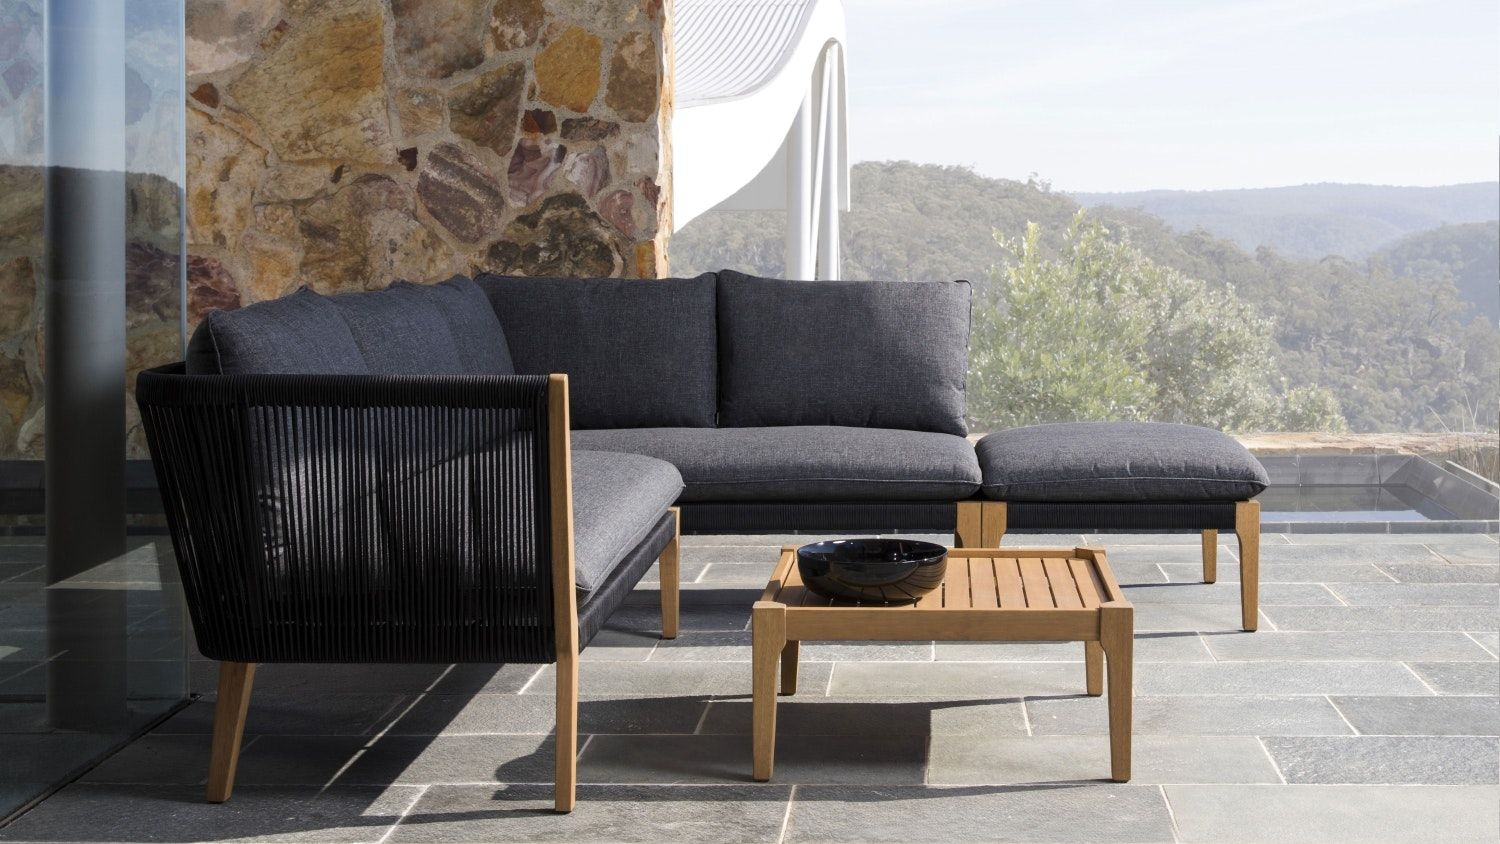 Home Outdoor Outdoor Lounges Modular Lounges Koa Outdoor